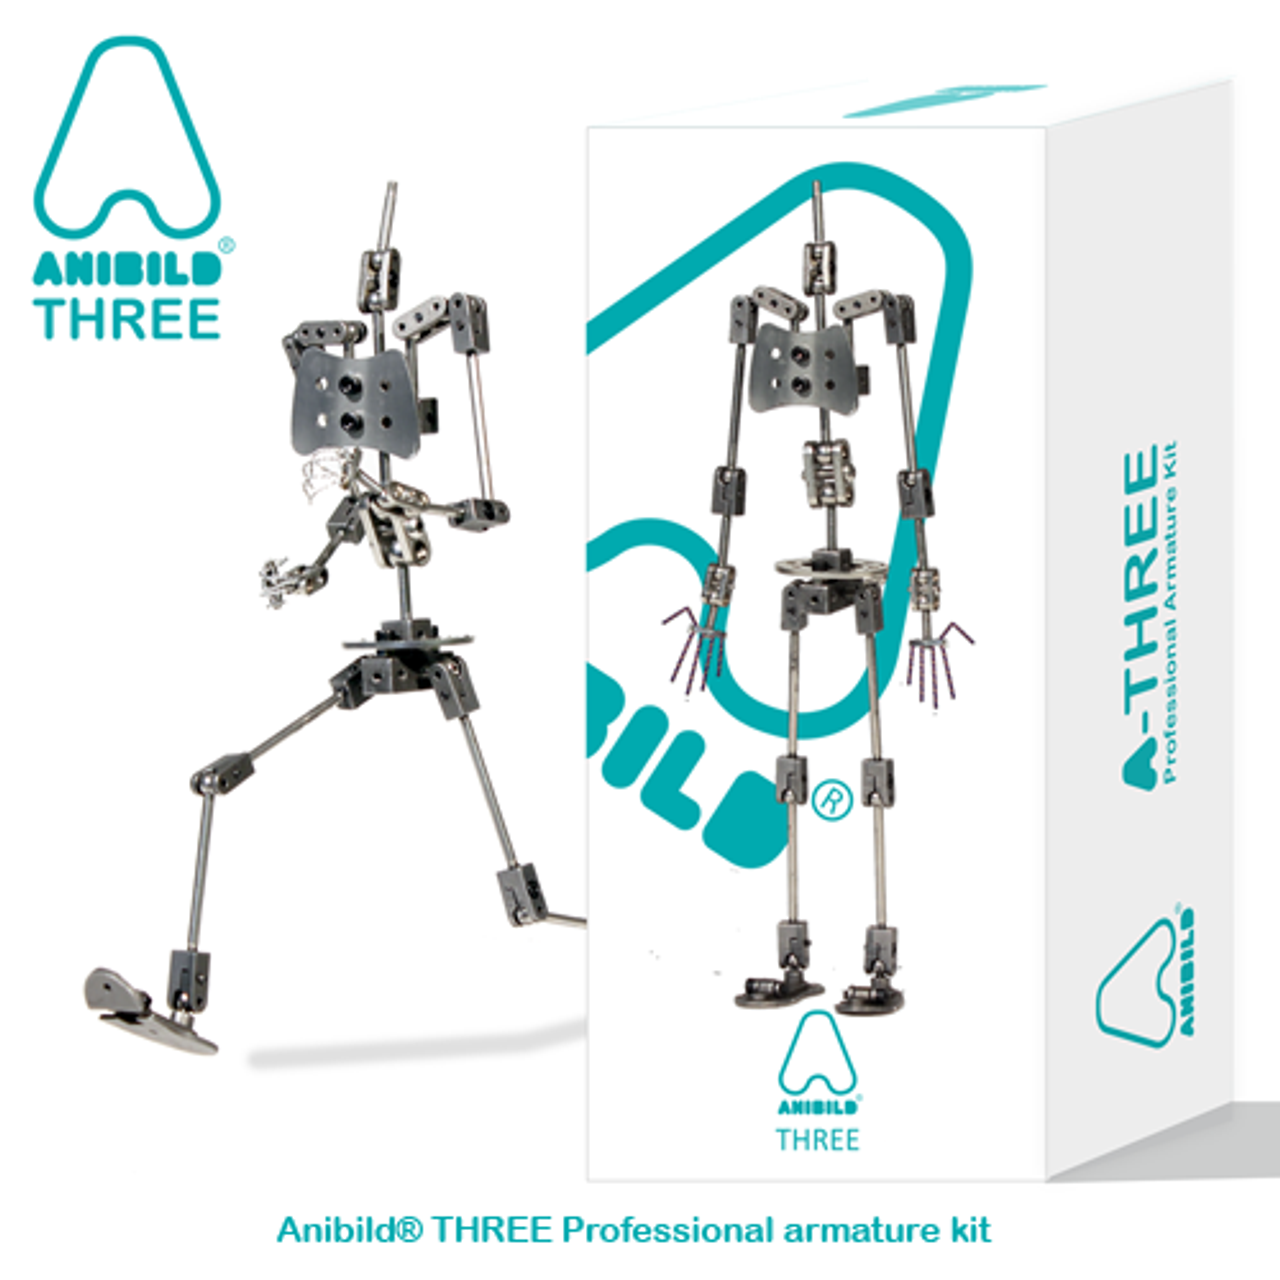 Anibild® THREE Professional Armature